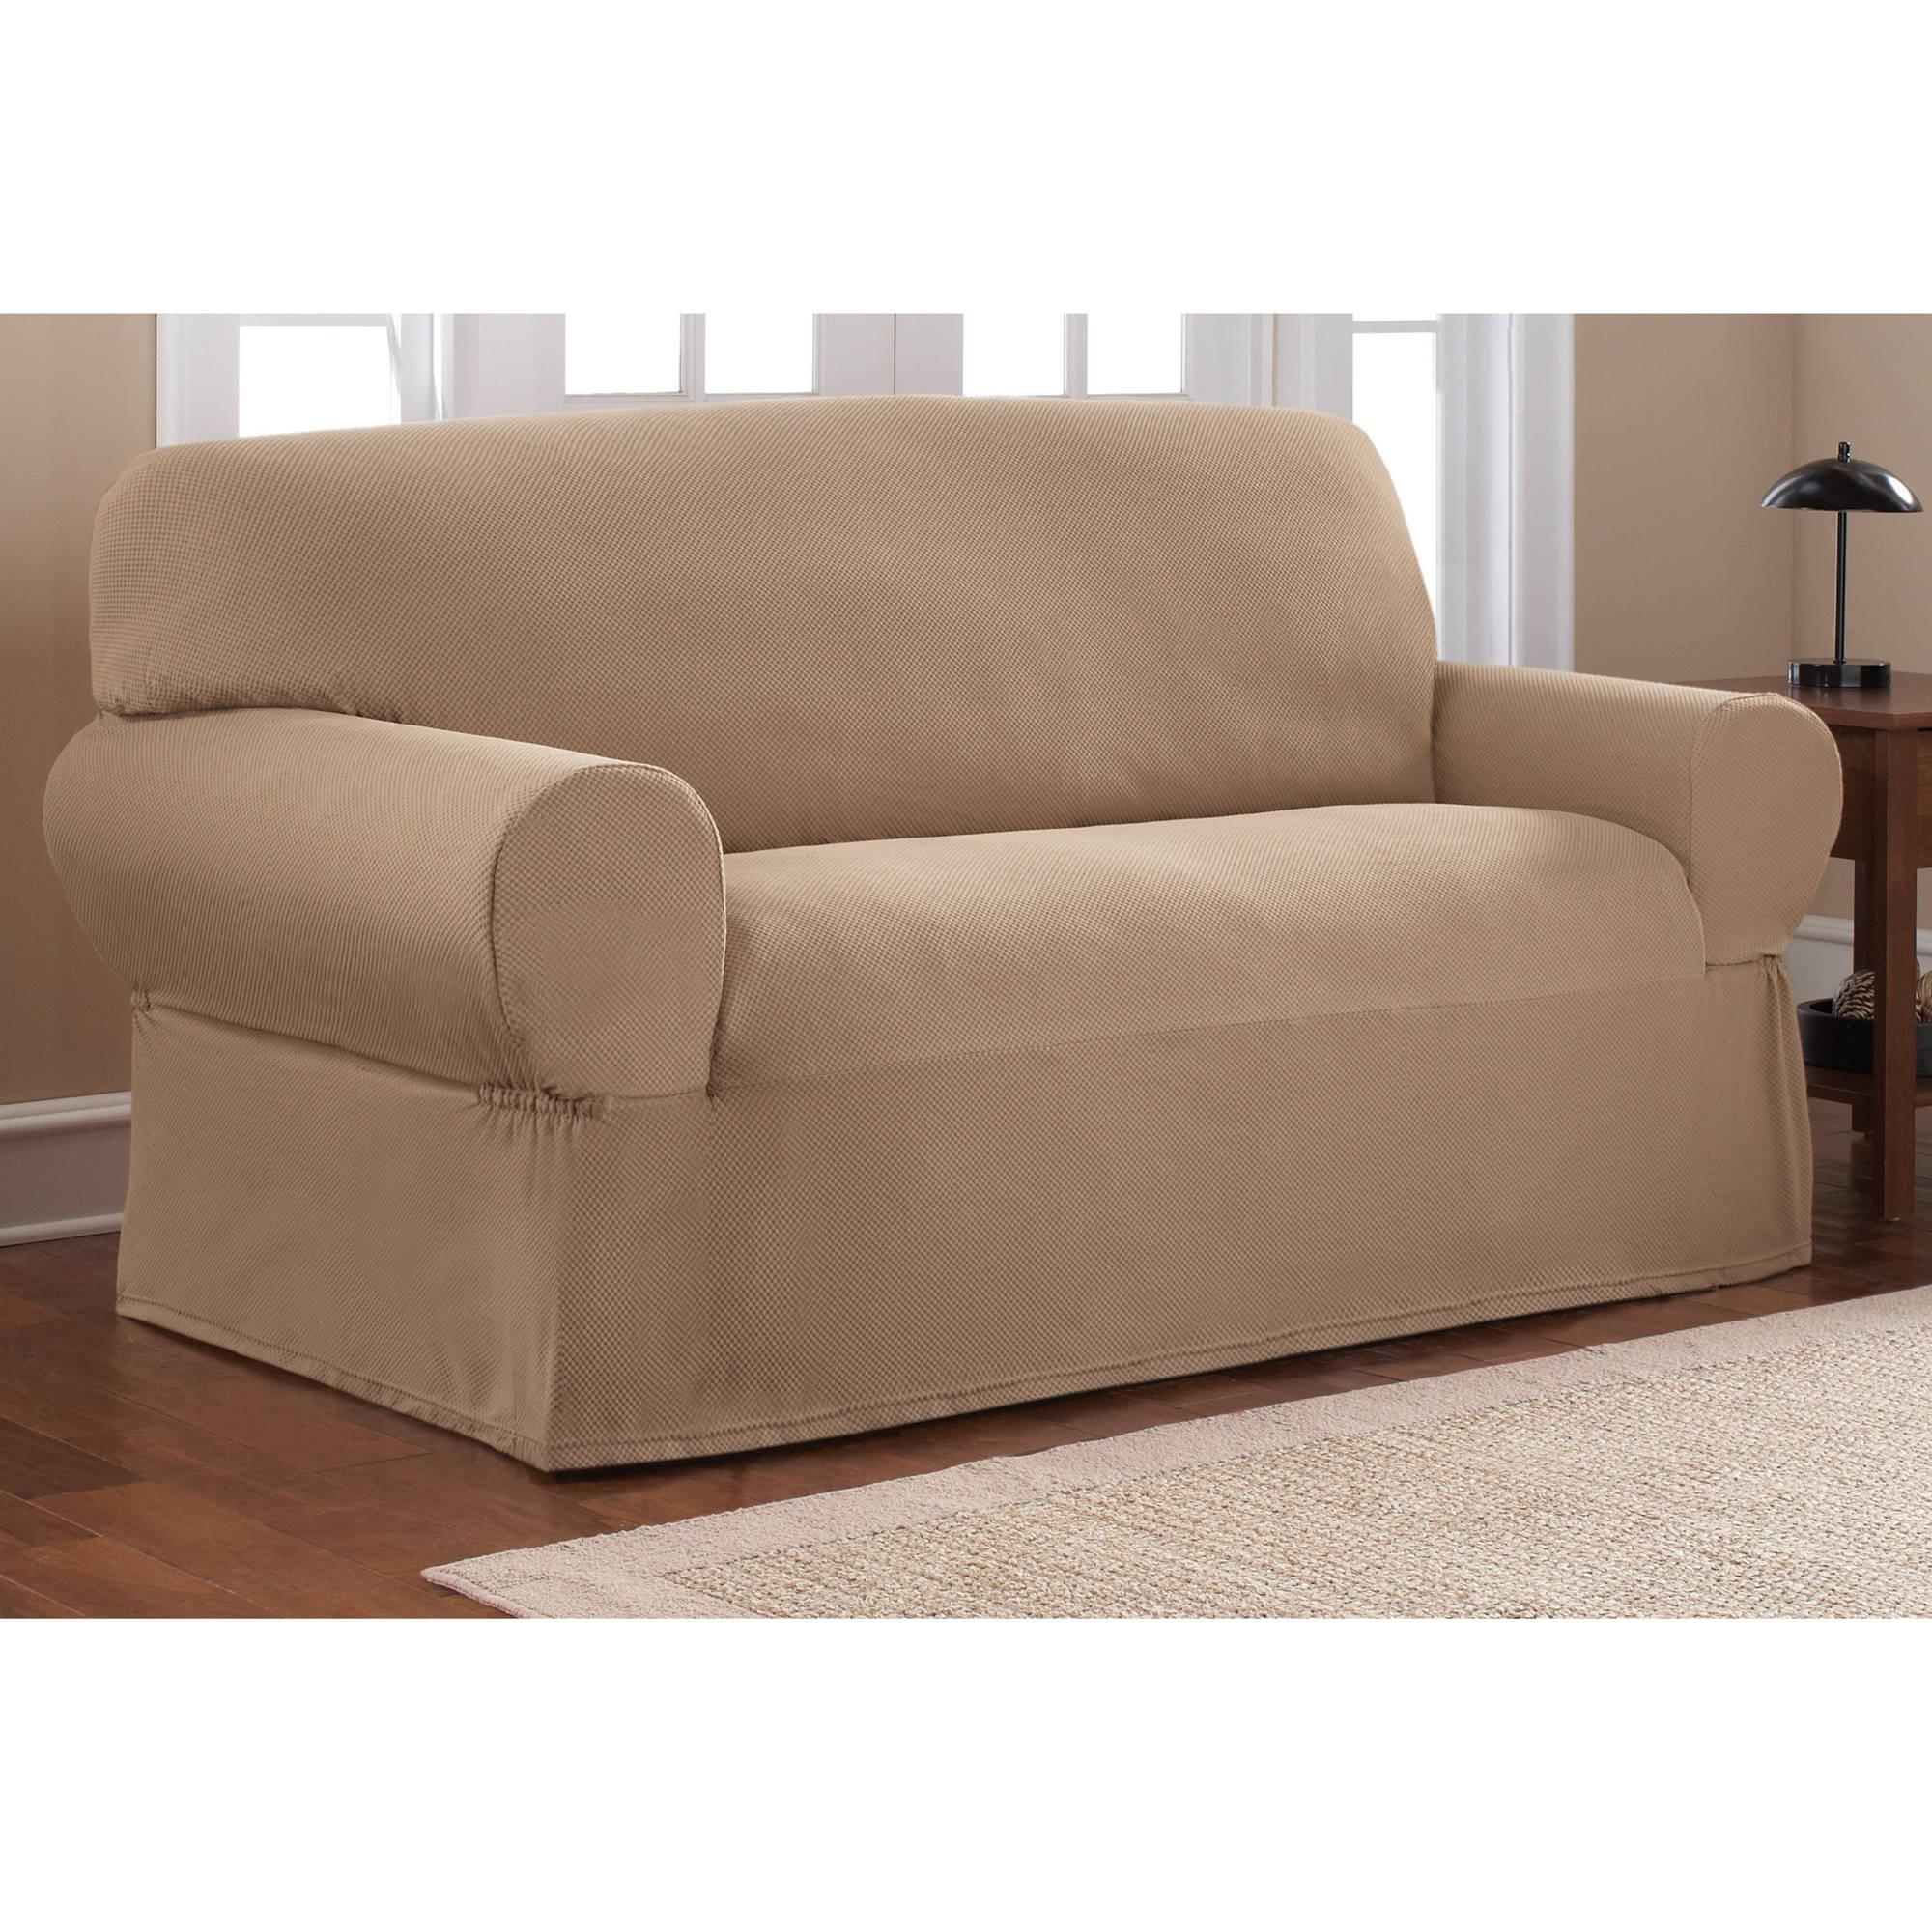 Mainstays 1 Piece Stretch Fabric Loveseat Slipcover – Walmart Regarding Stretch Slipcovers For Sofas (Image 7 of 20)